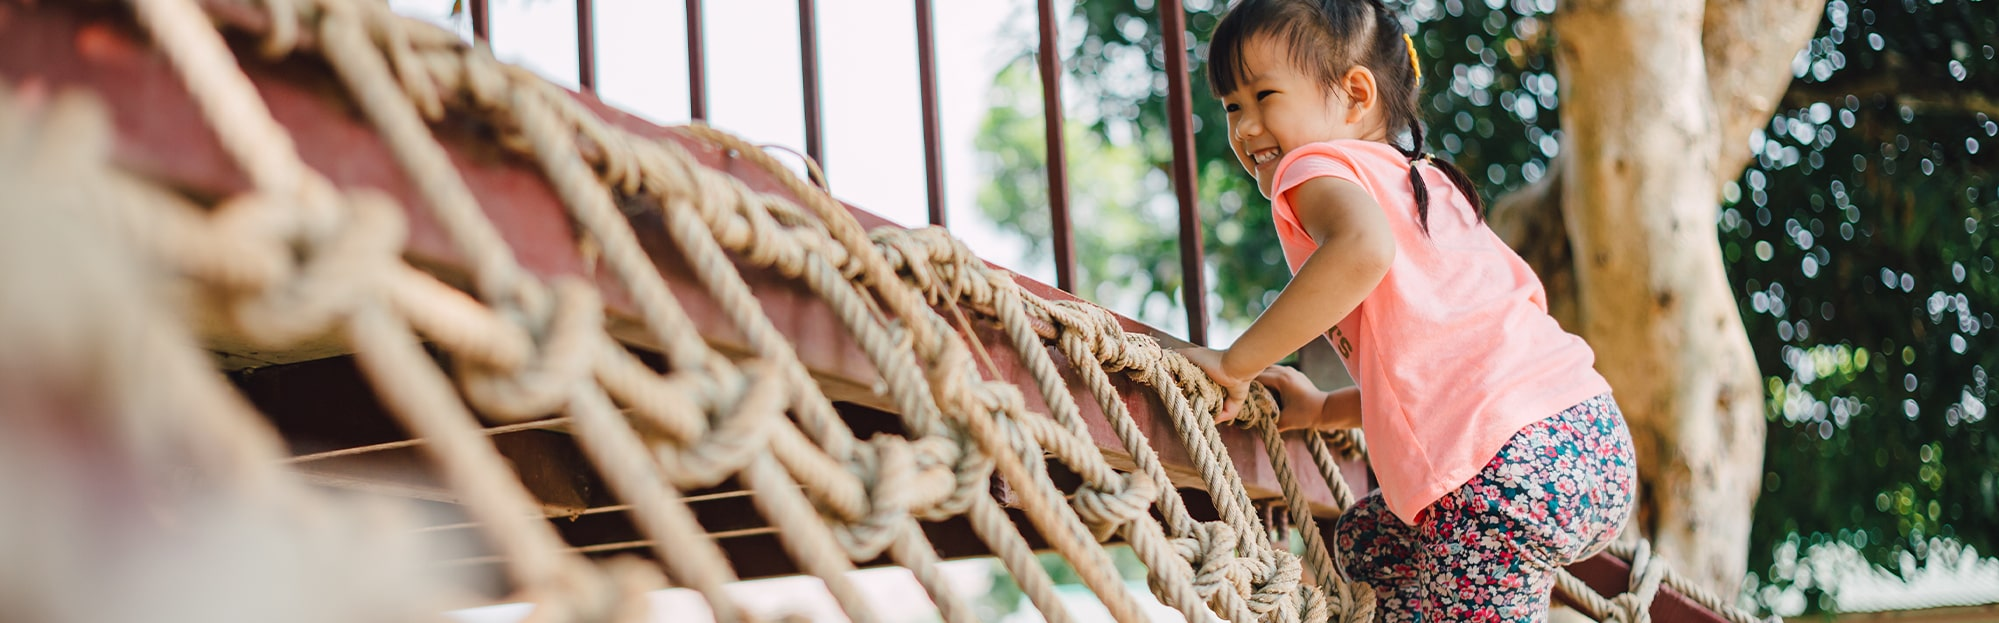 Happy little girl climbing a jungle gym rope